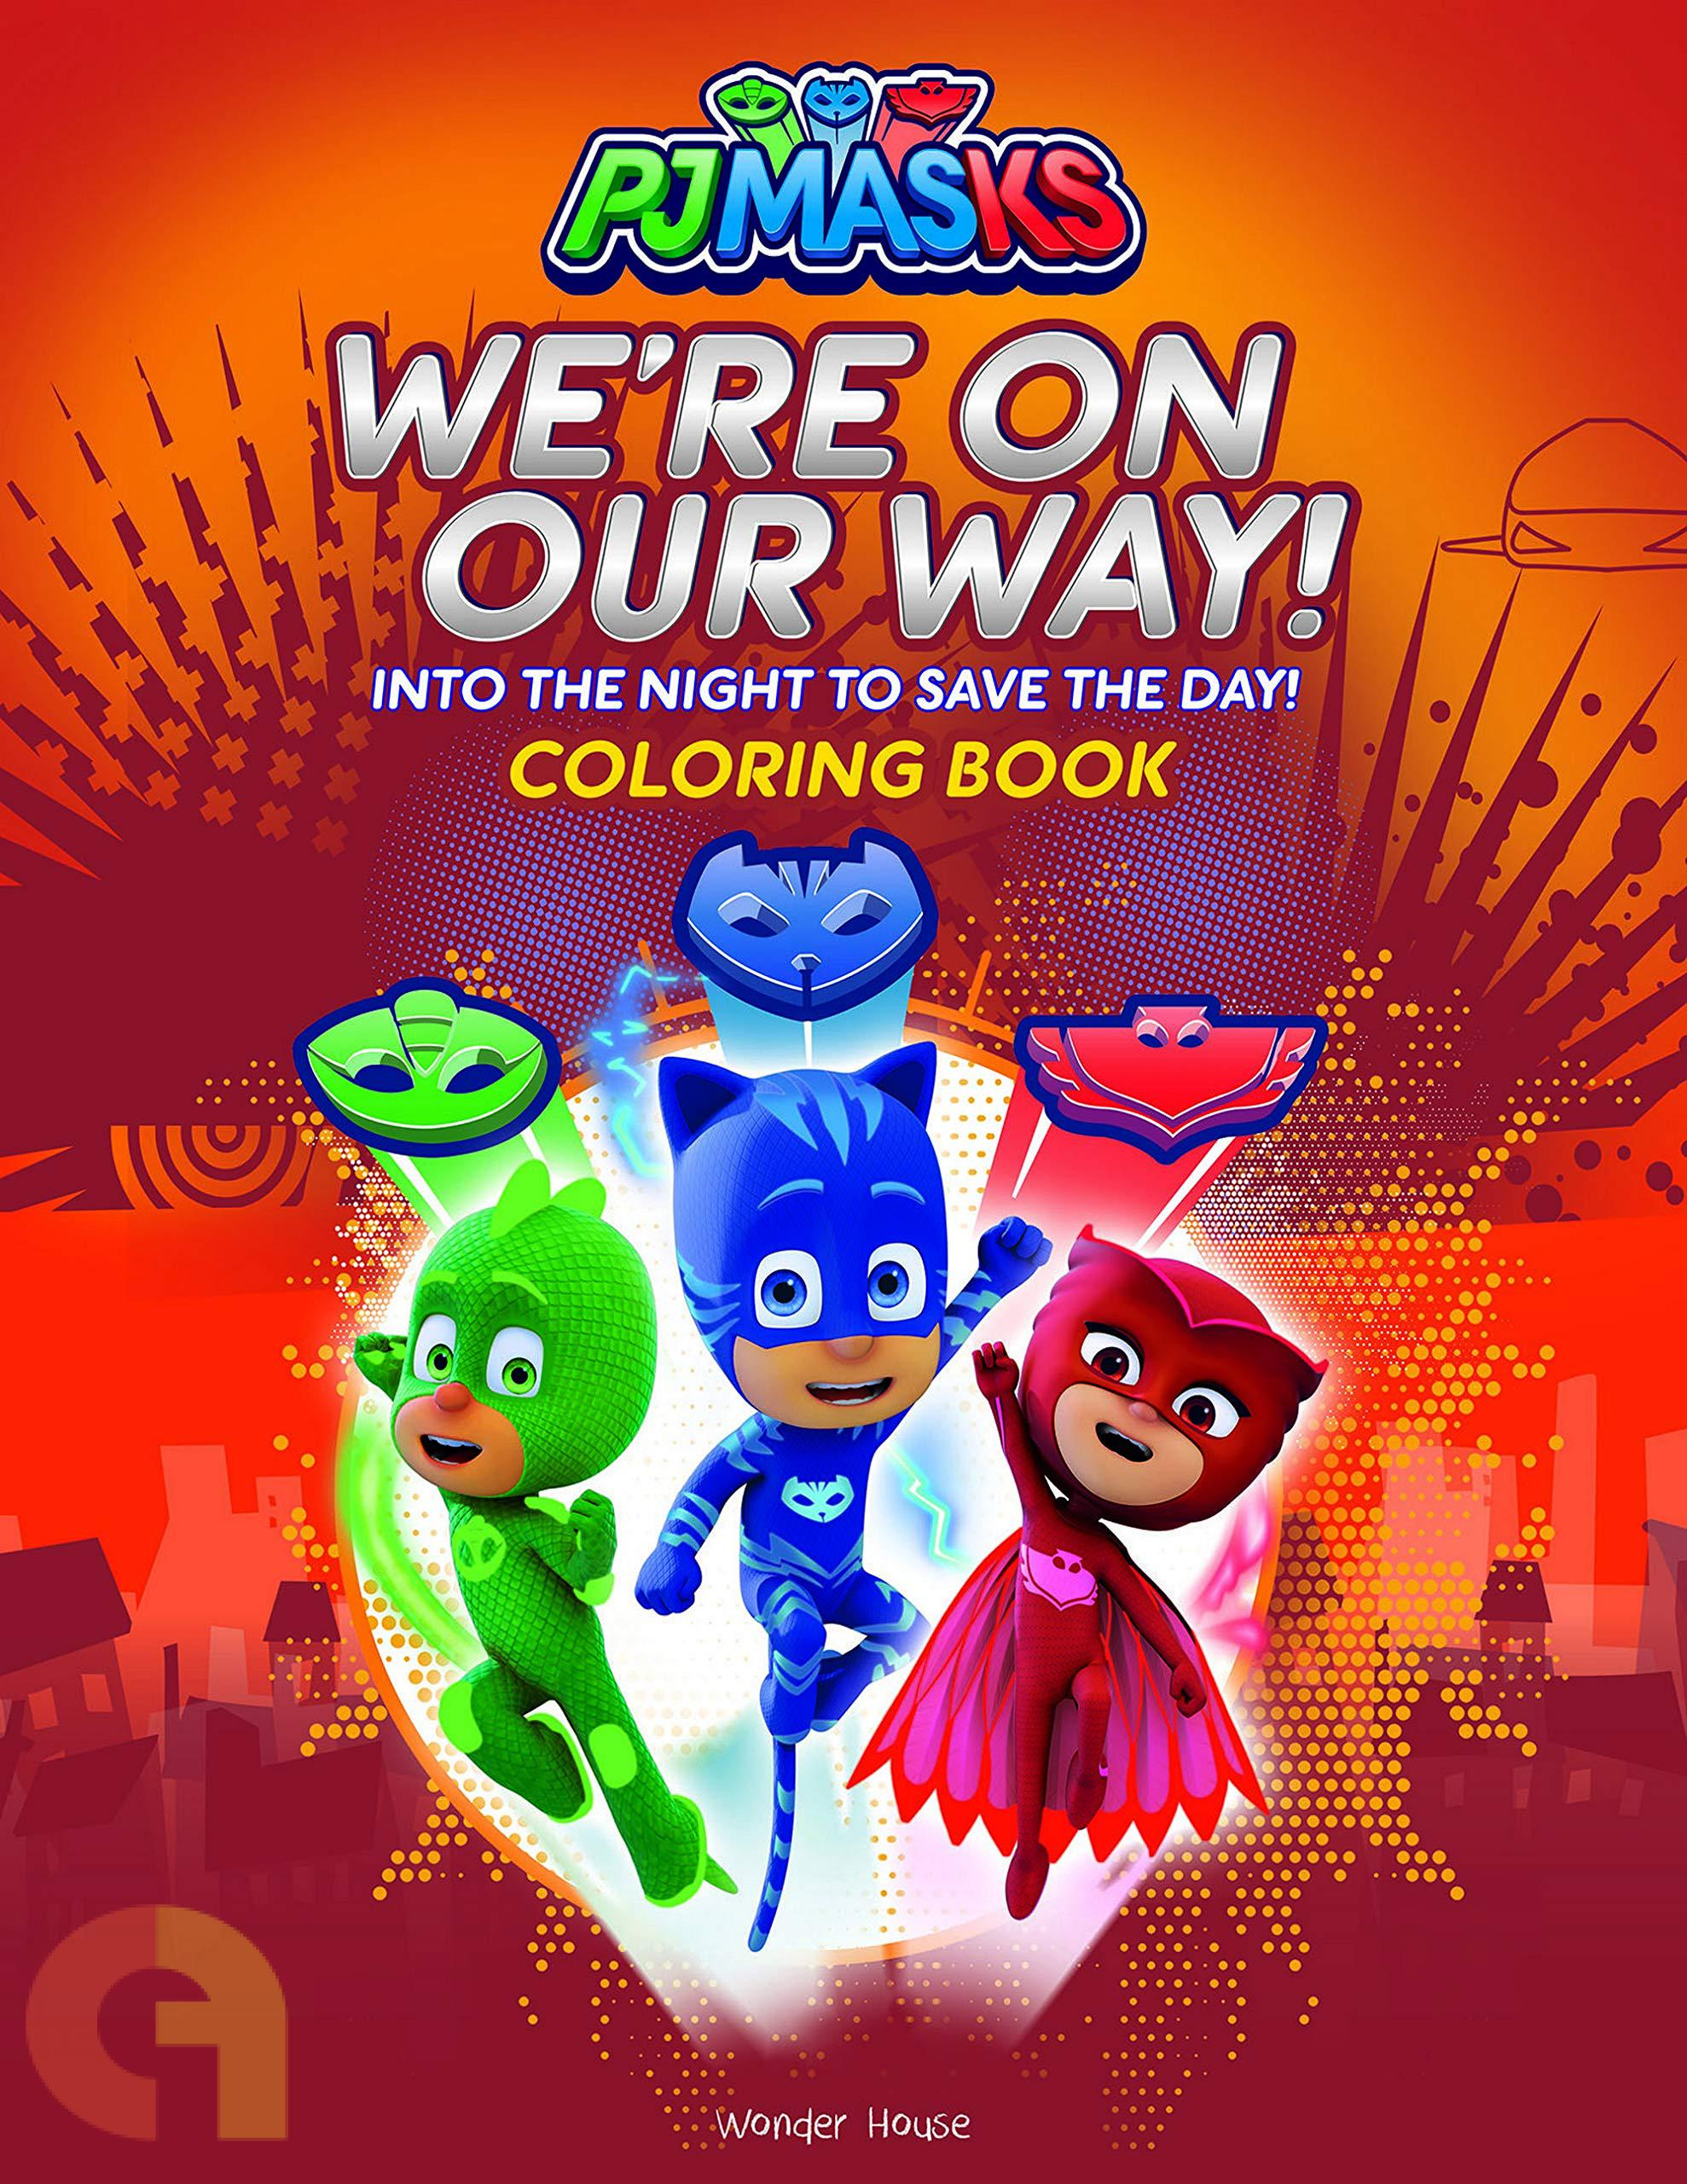 PJ Masks: We Are On Our Way